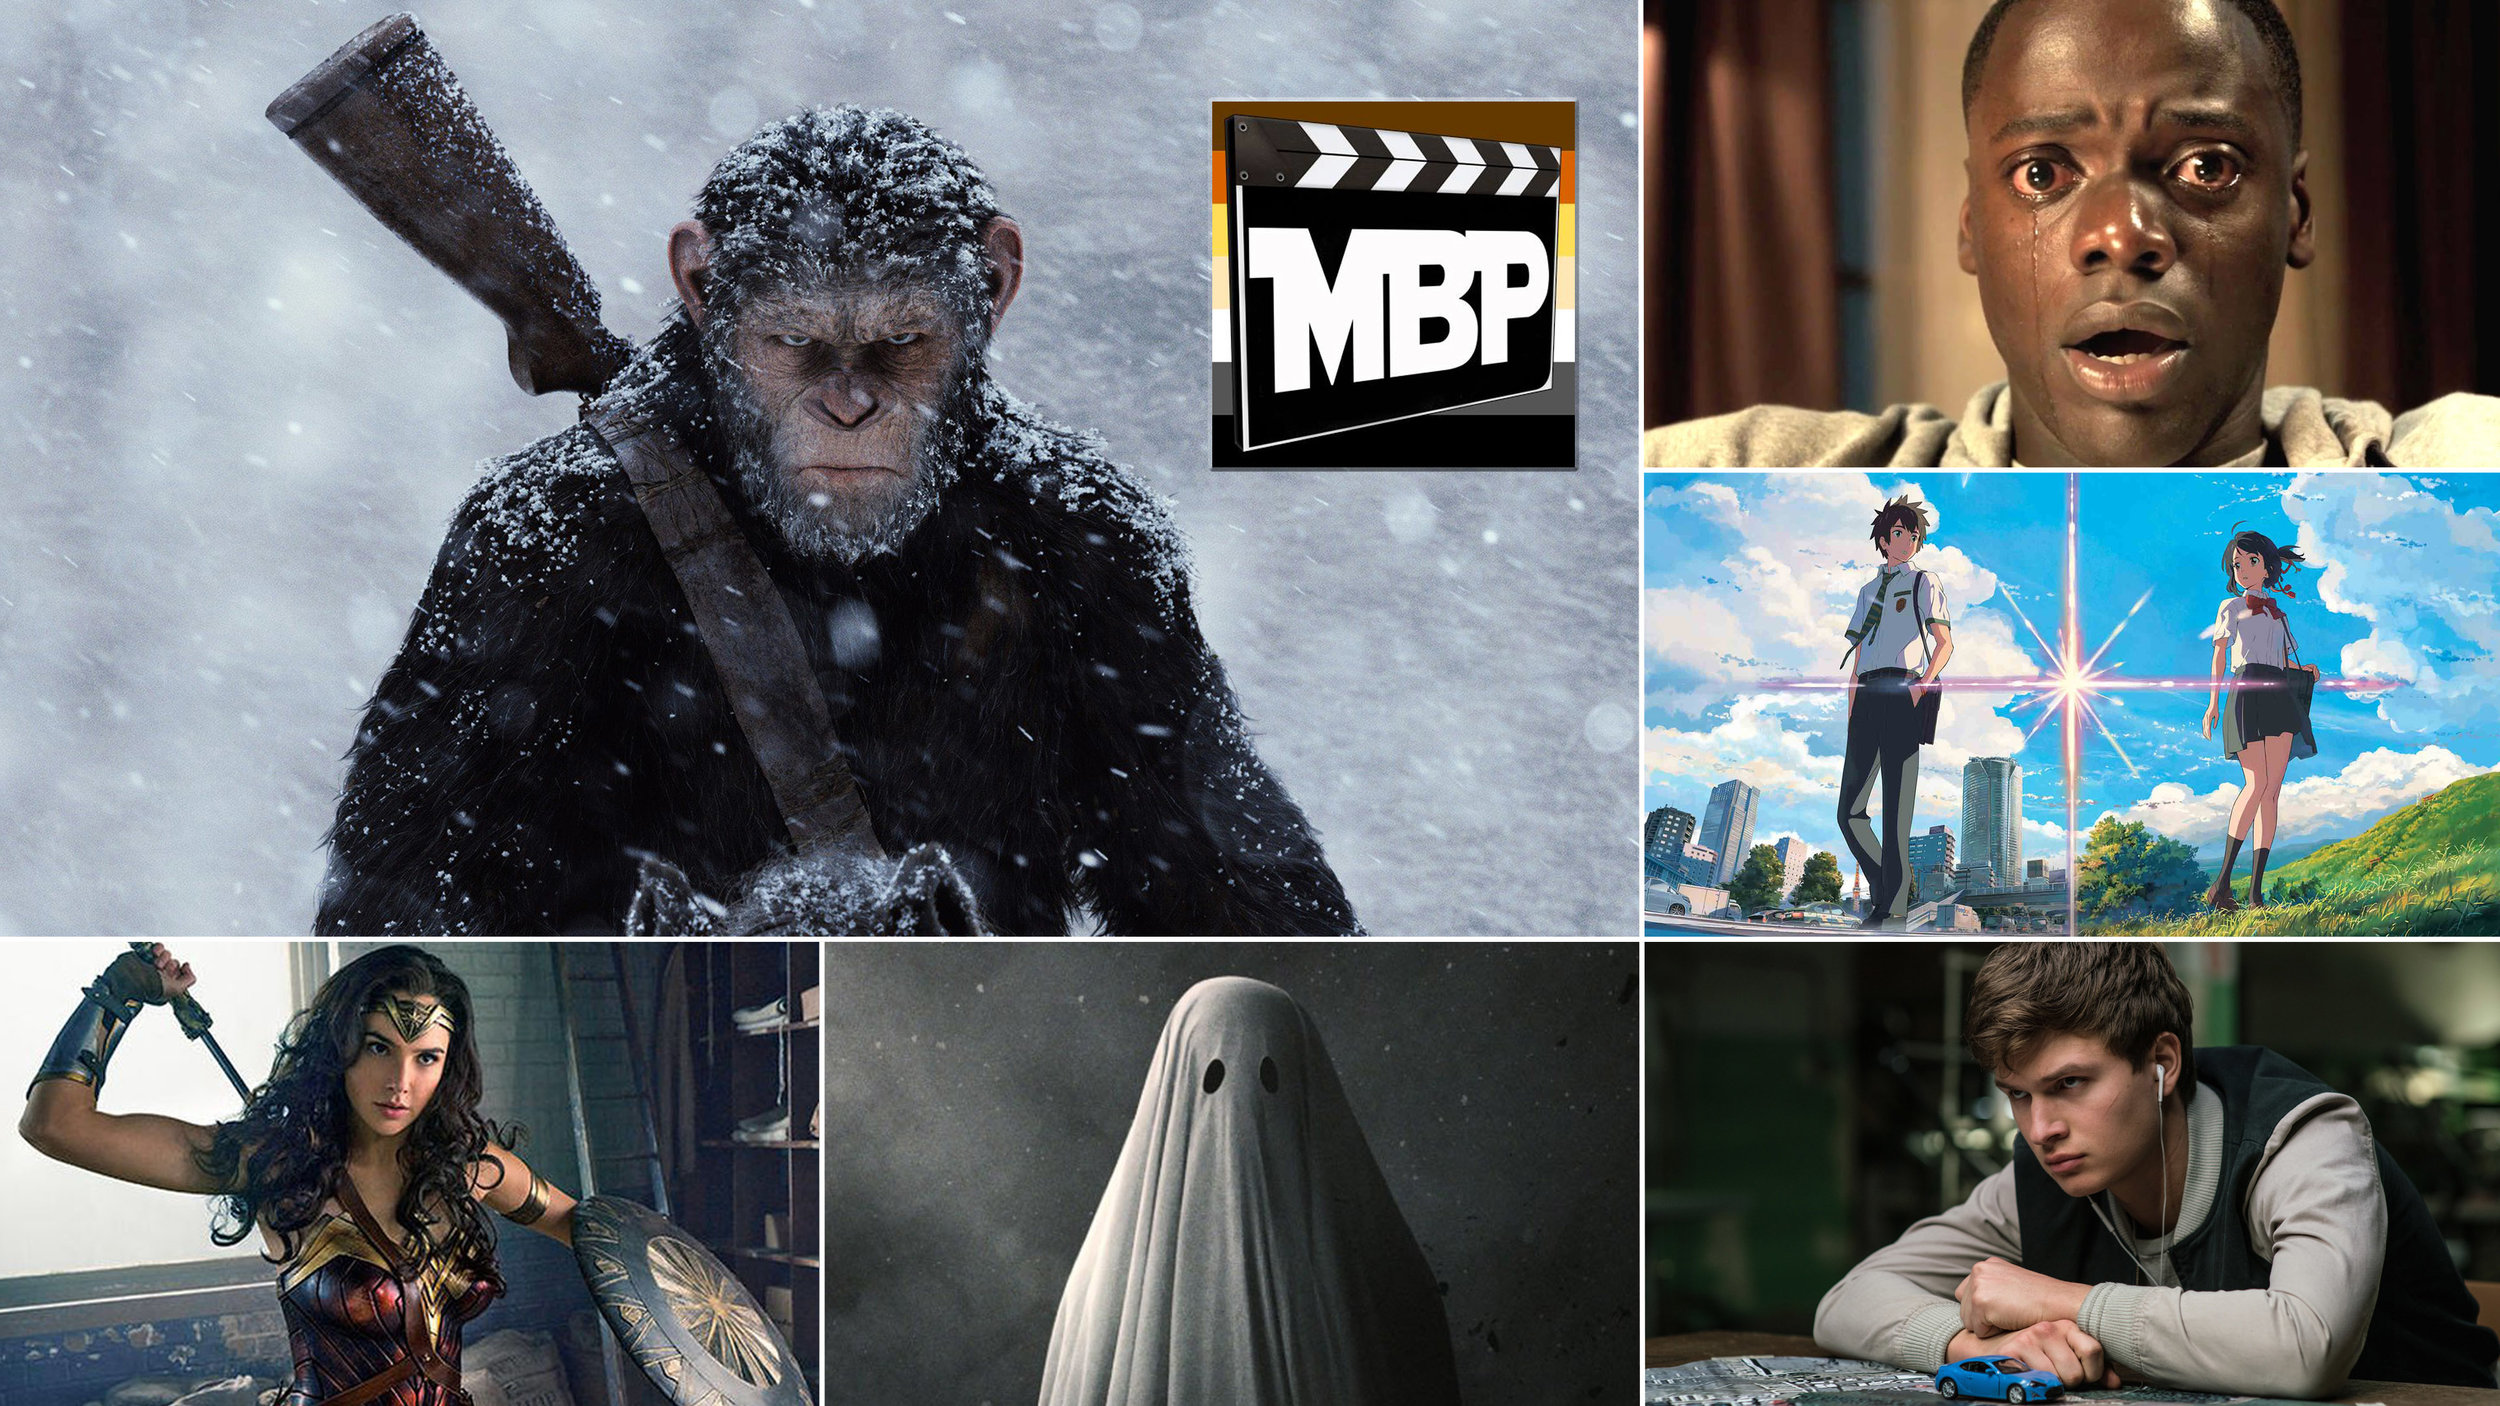 MBP e242 - Top 3 Films of 2017 (So Far) and 'War for the Planet of the Apes' (7/21/17)    Can you believe we're already halfway through 2017? We can't either. But hey, since we're here, let's talk about our favorite films of the year so far. Plus, in this episode we review 'War for the Planet of the Apes,' the third installment of the prequel series. Click the link to listen!